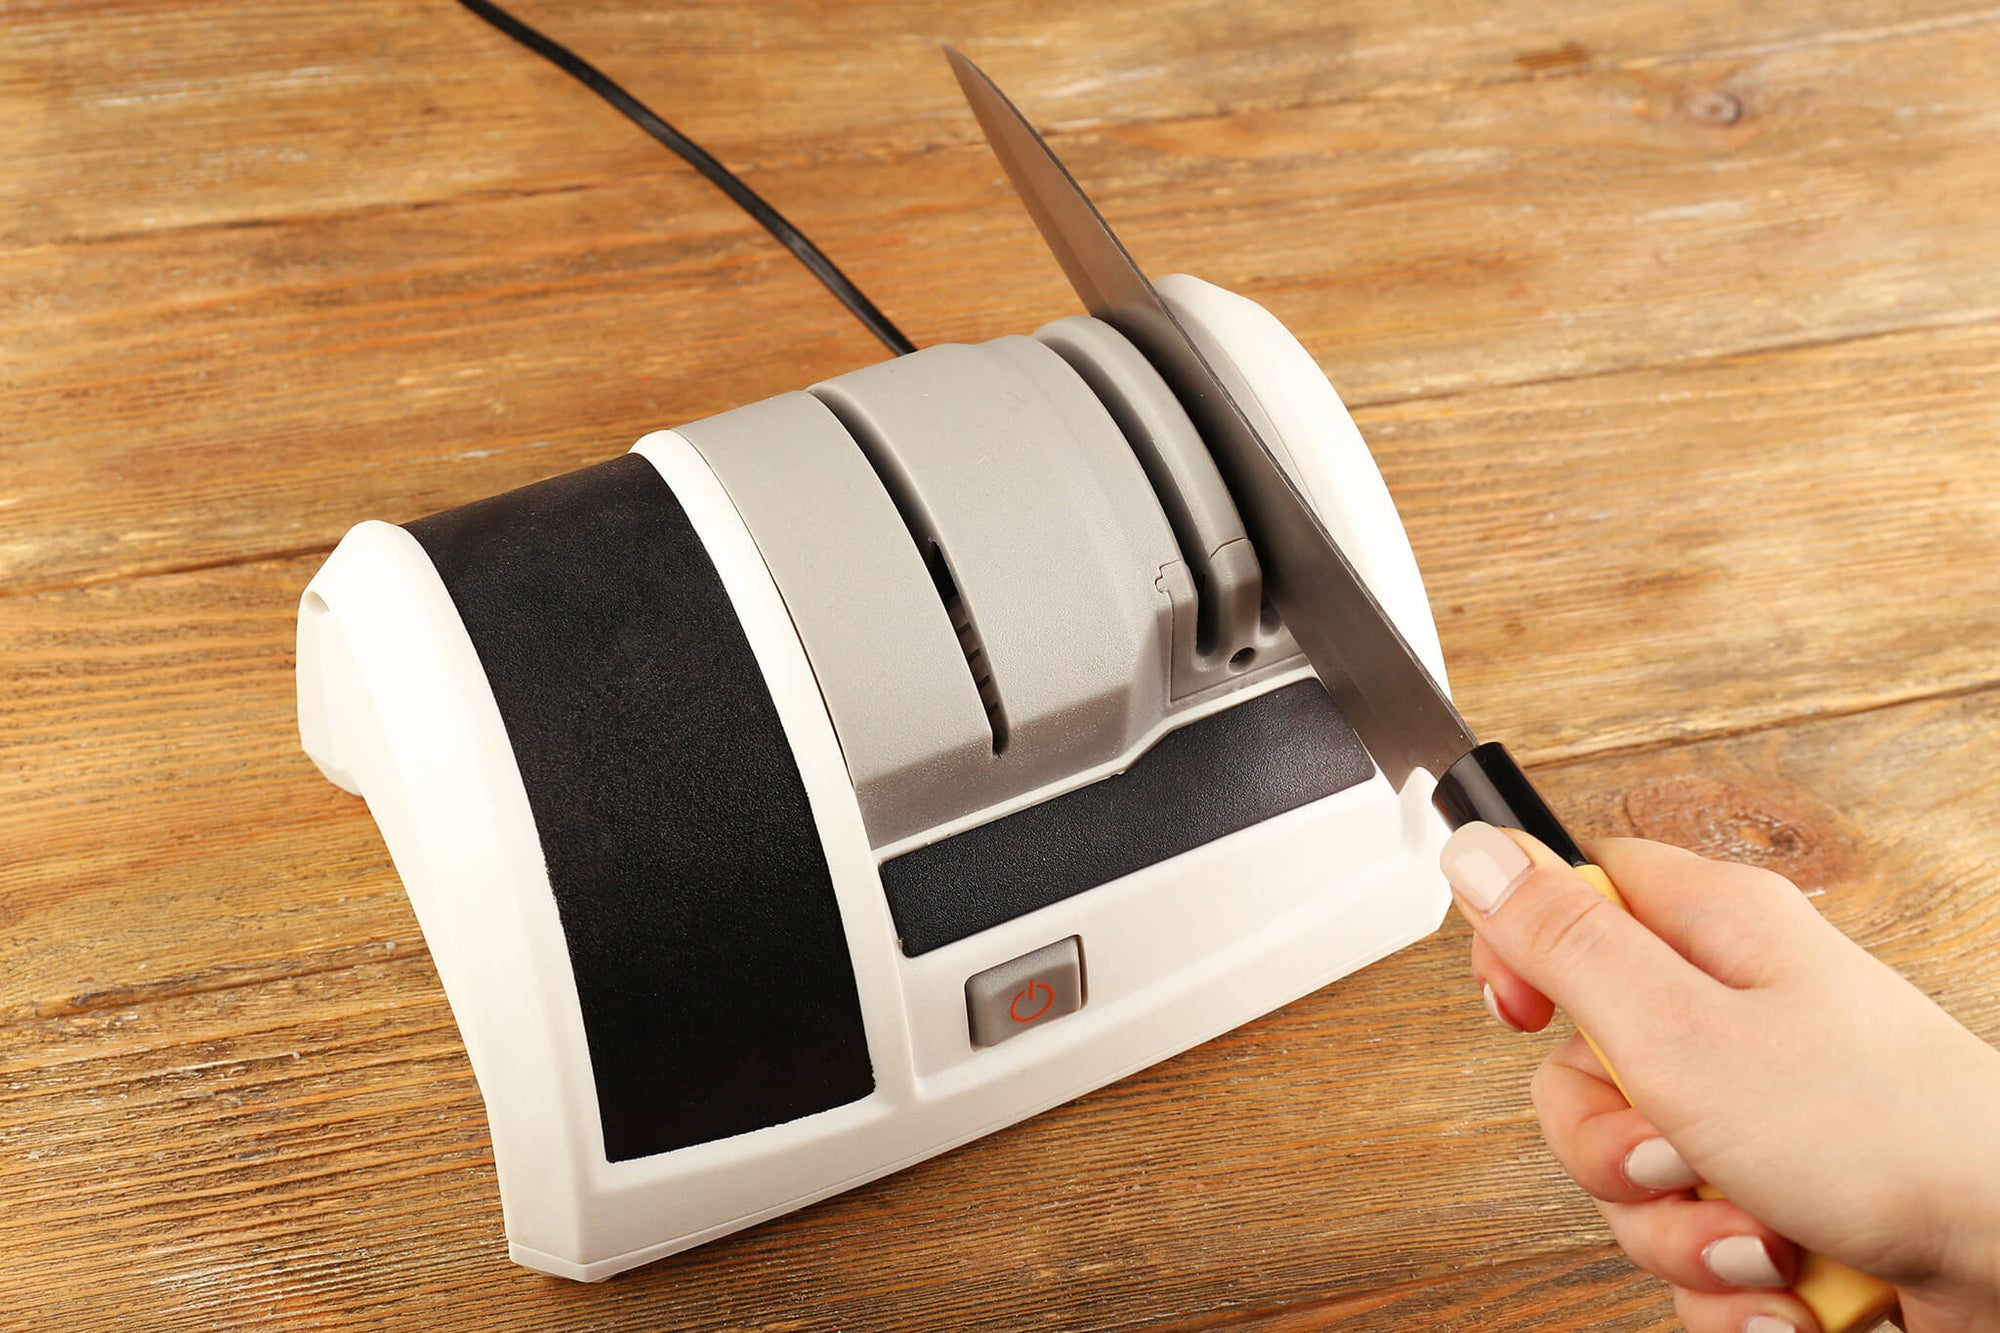 How to Choose the Best Electric Knife Sharpener